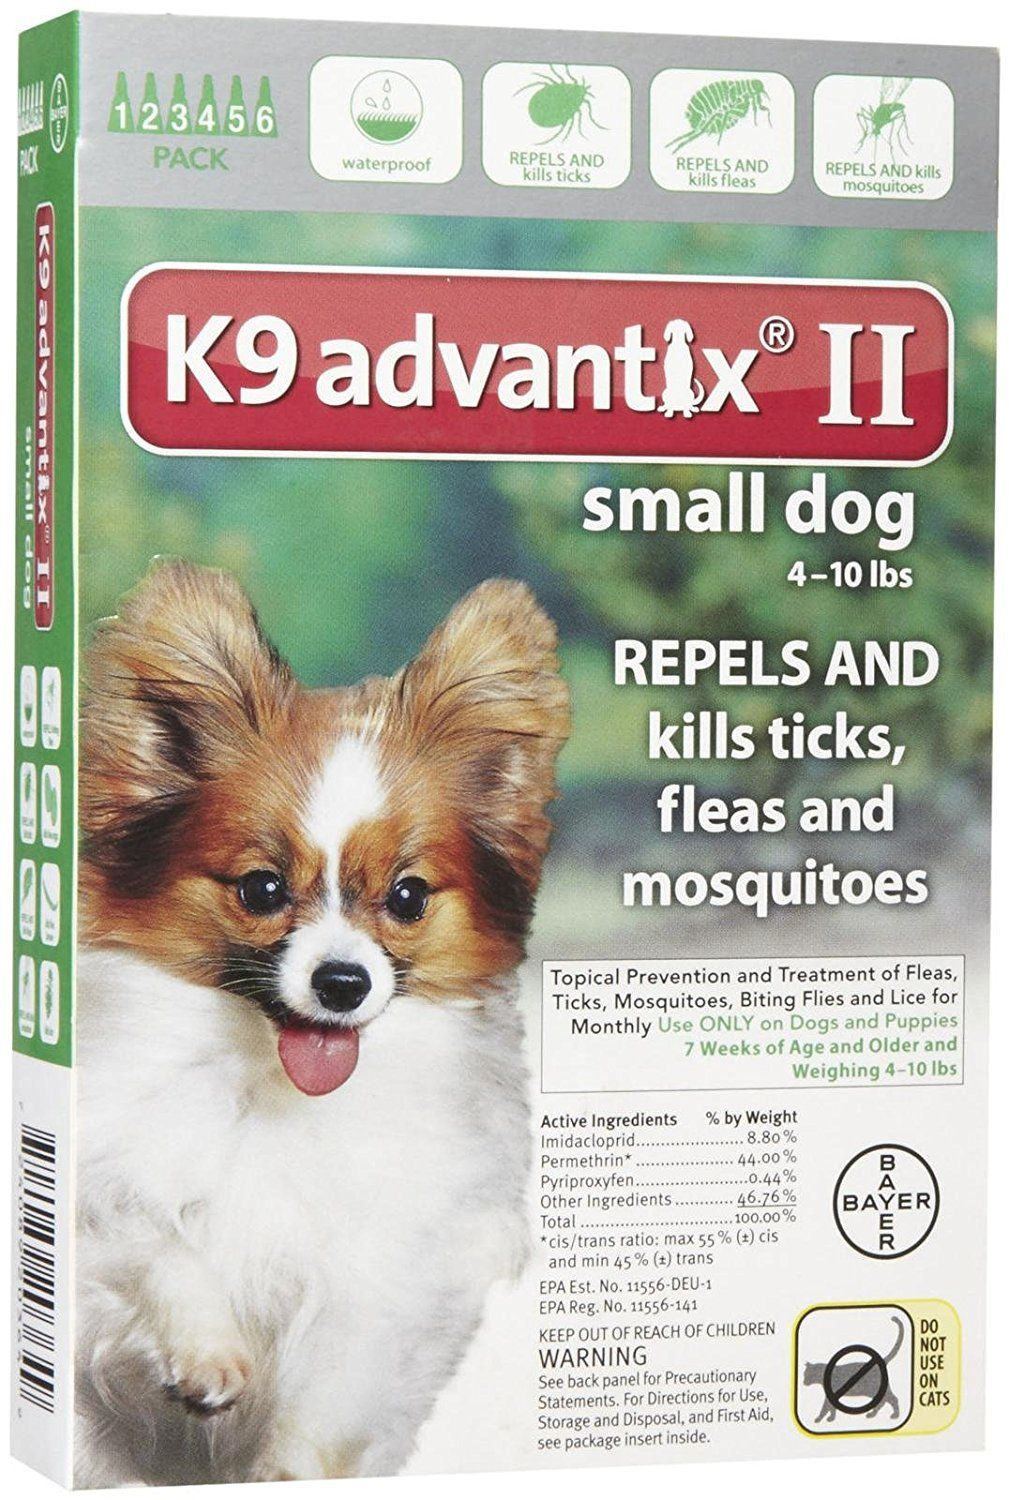 K9 Advantix Ii Small Dog 6 Pack Startling Review Available Here Flea And Tick Control Small Dogs Fleas Flea Tick